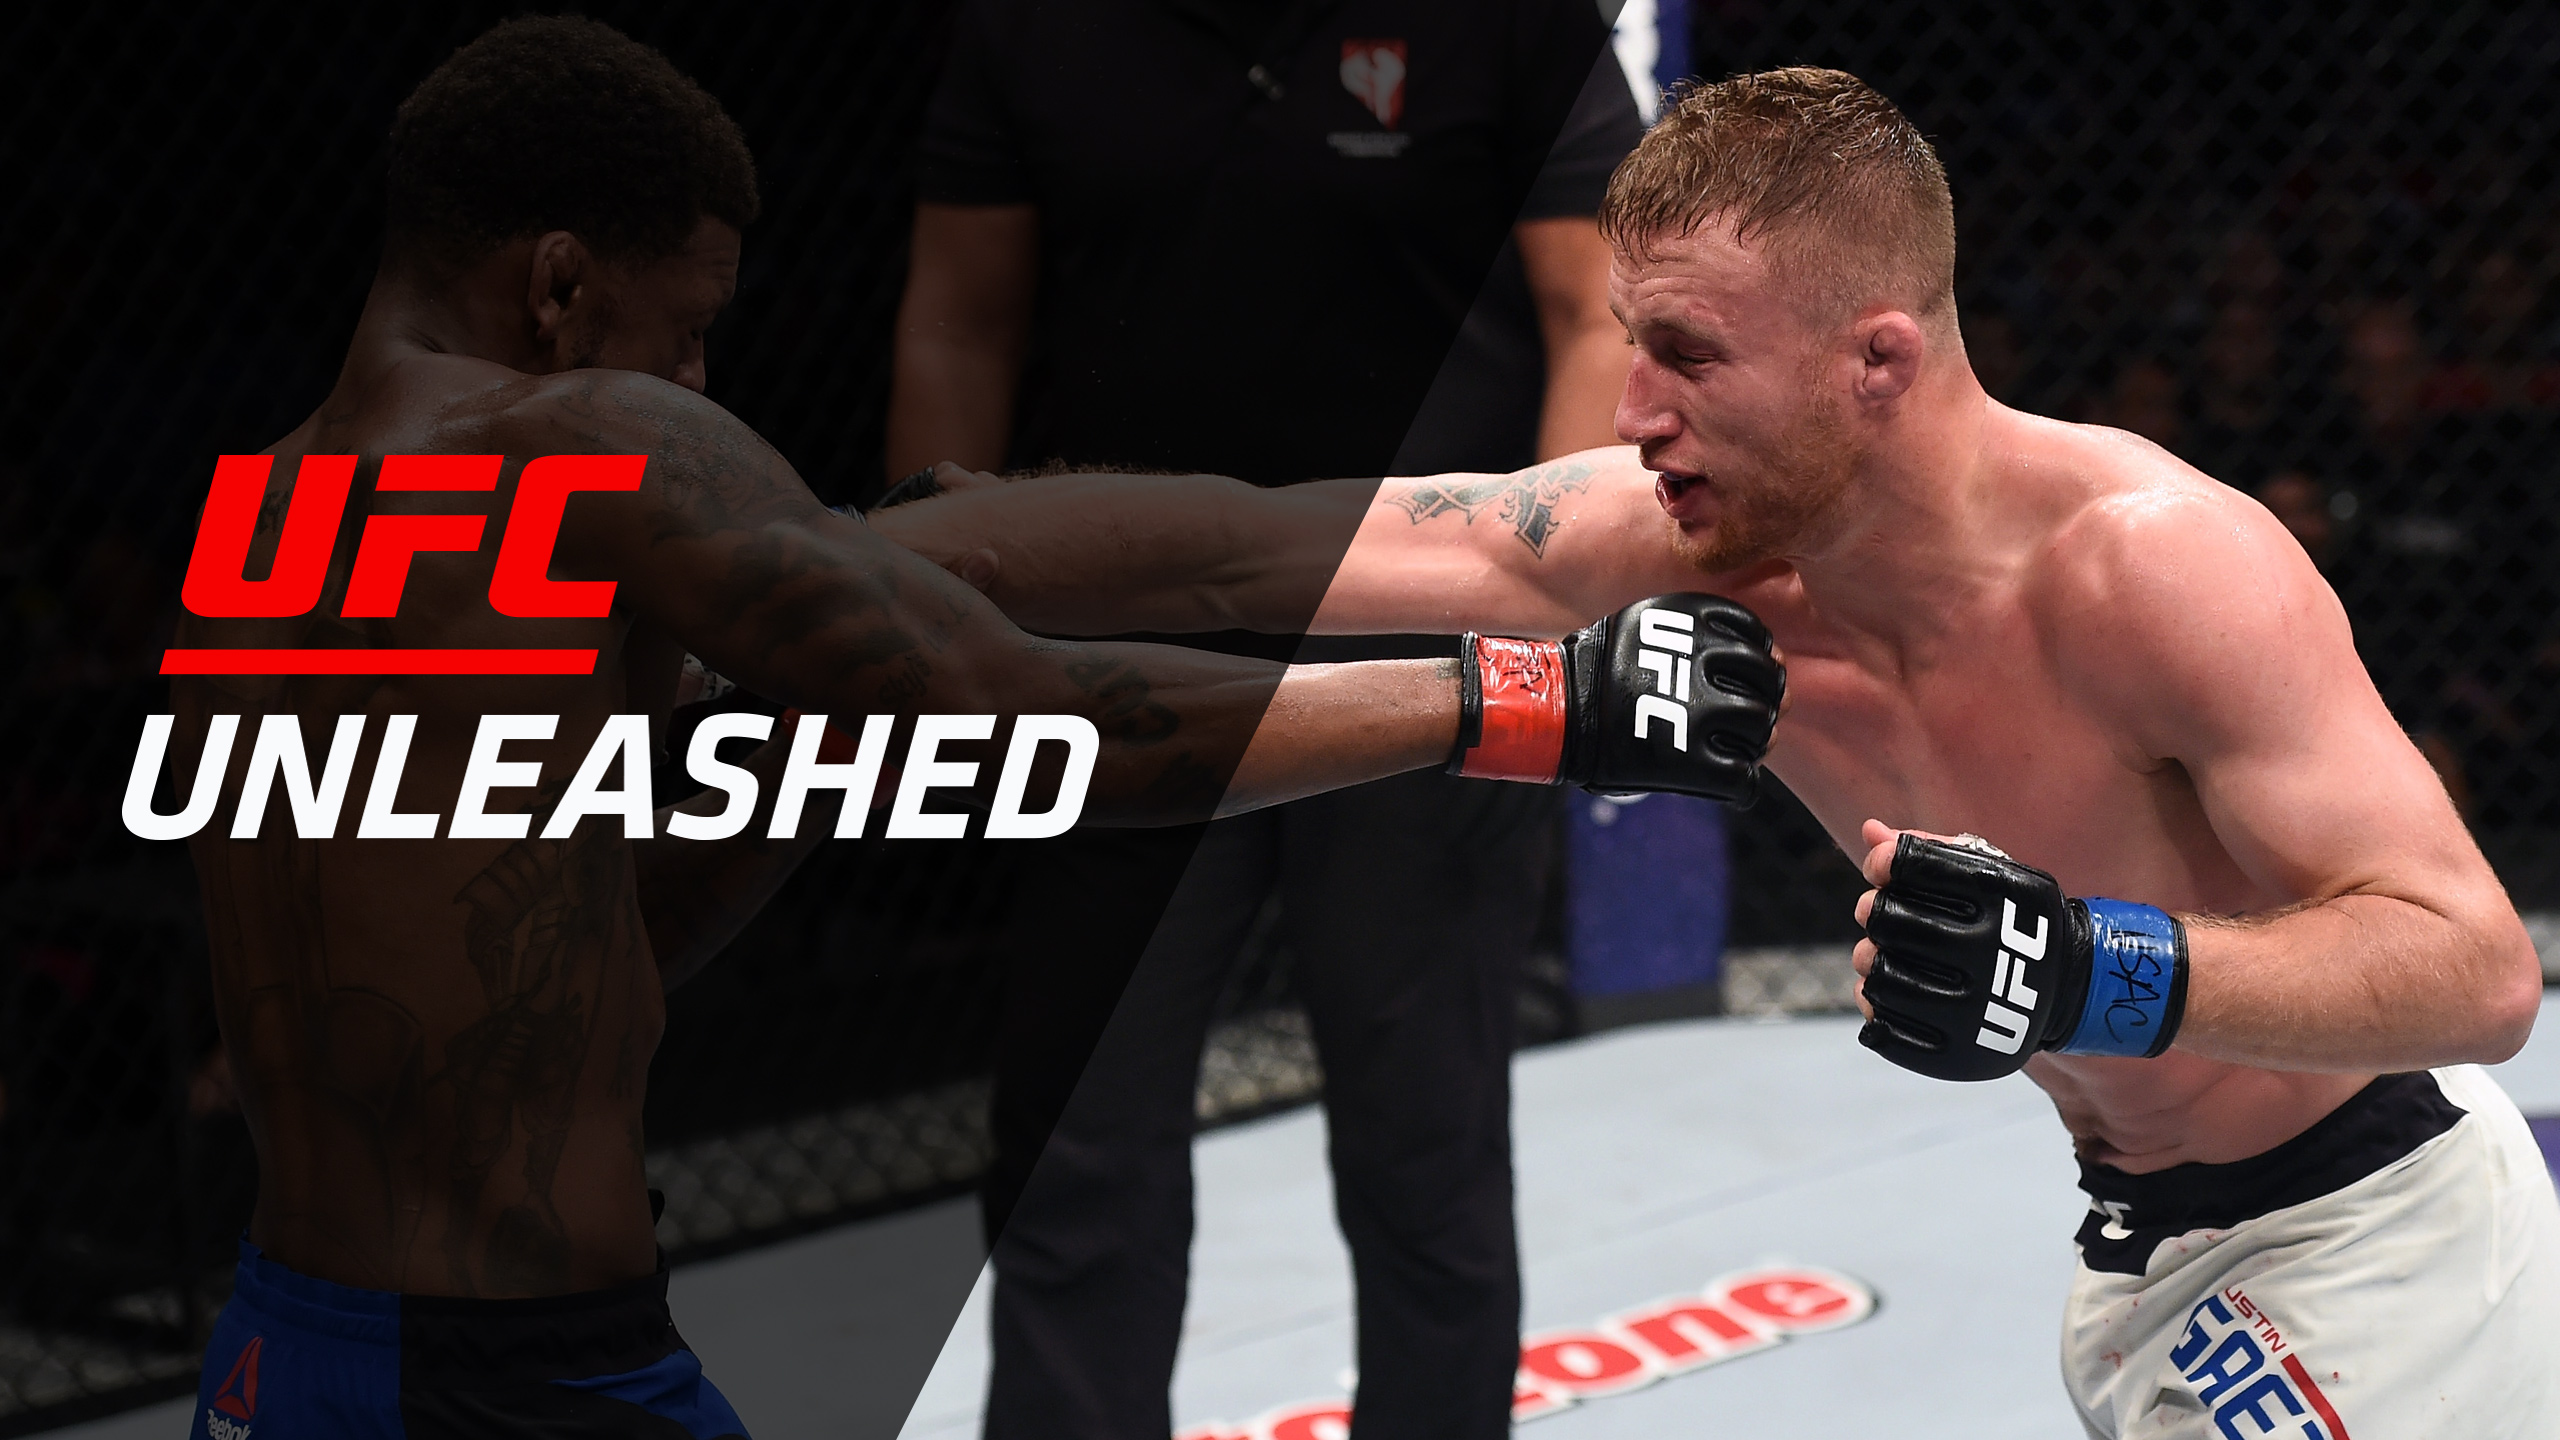 UFC Unleashed: M. Johnson vs. Gaethje